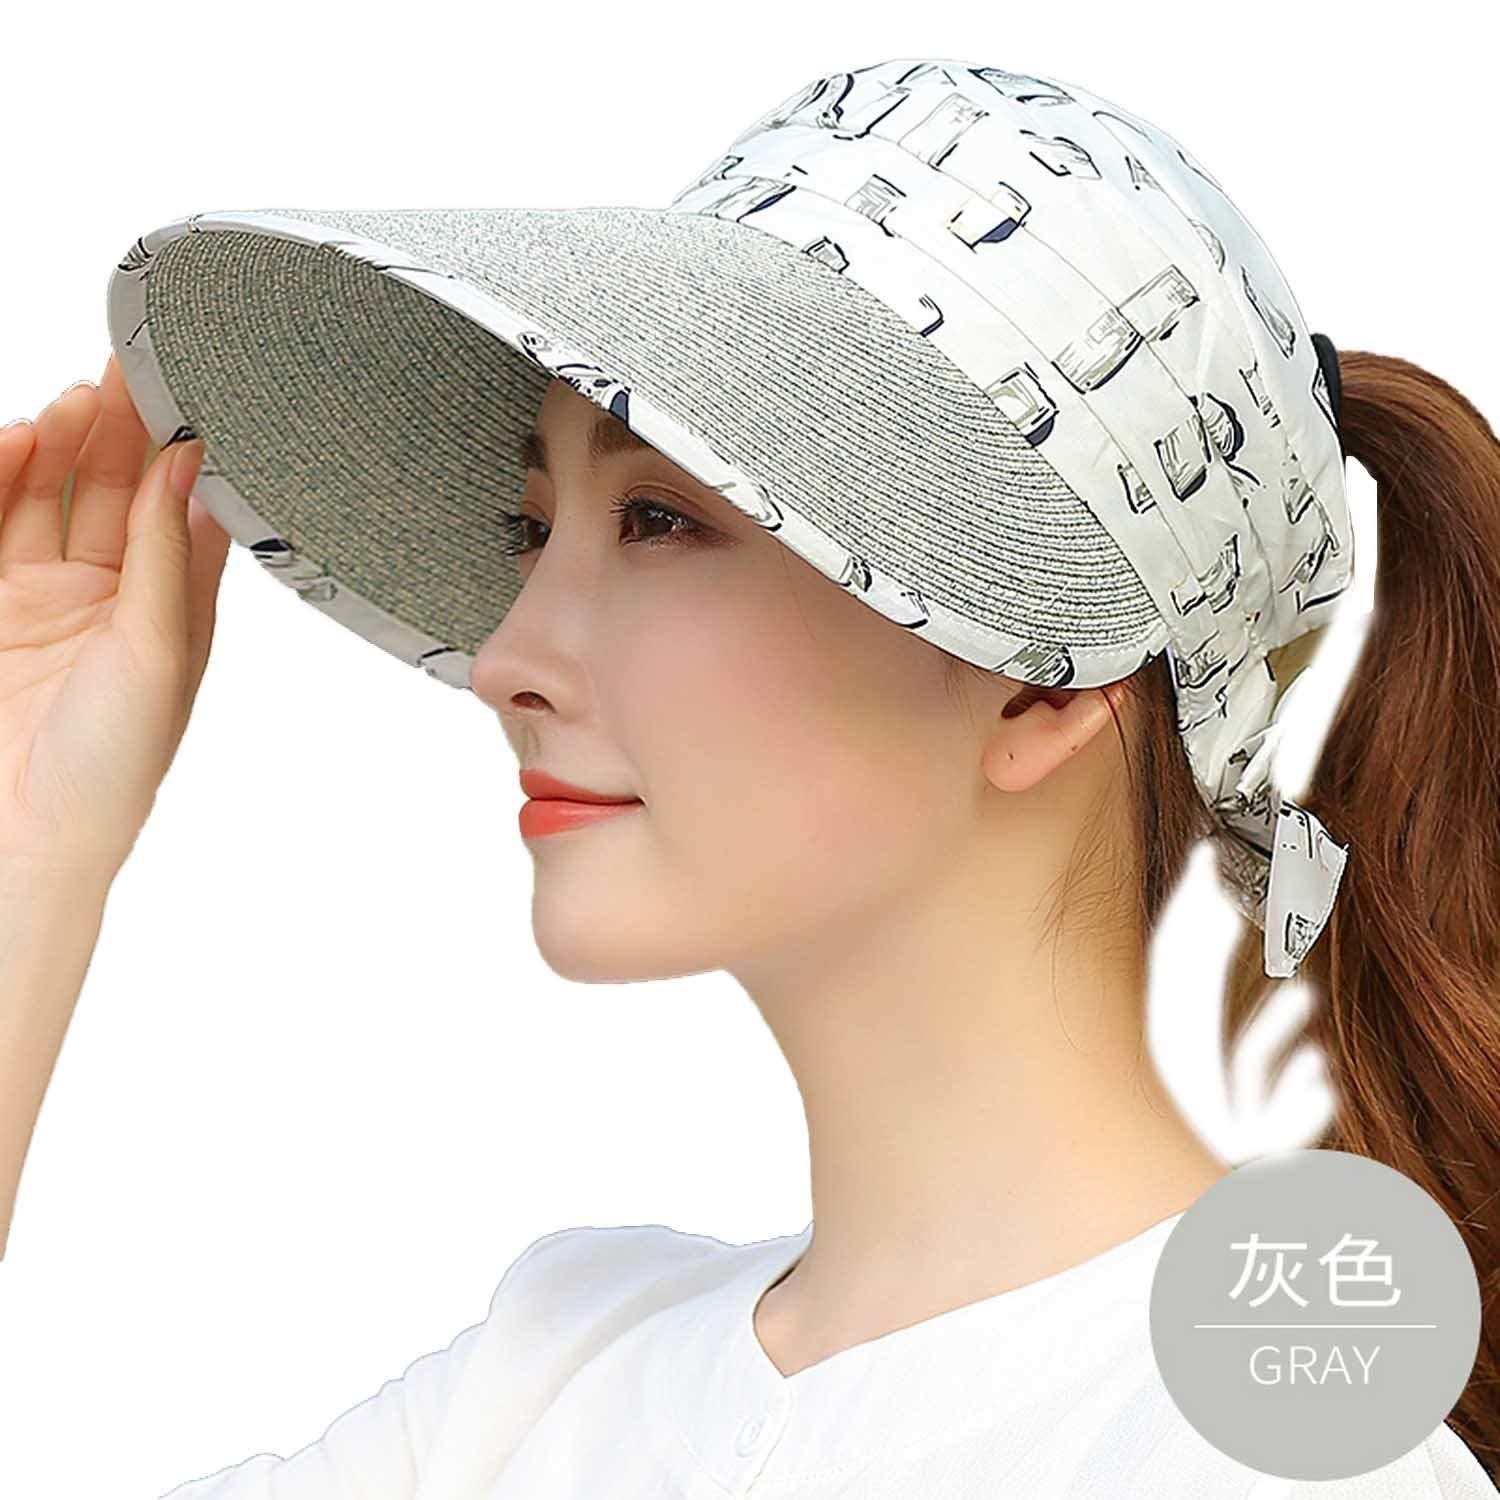 cf69df9fea1c7 Raycoon Straw Hat Women Summer Riding Windshield Sun Hat Outdoor Sunscreen Sun  Hat UV Protection Beach